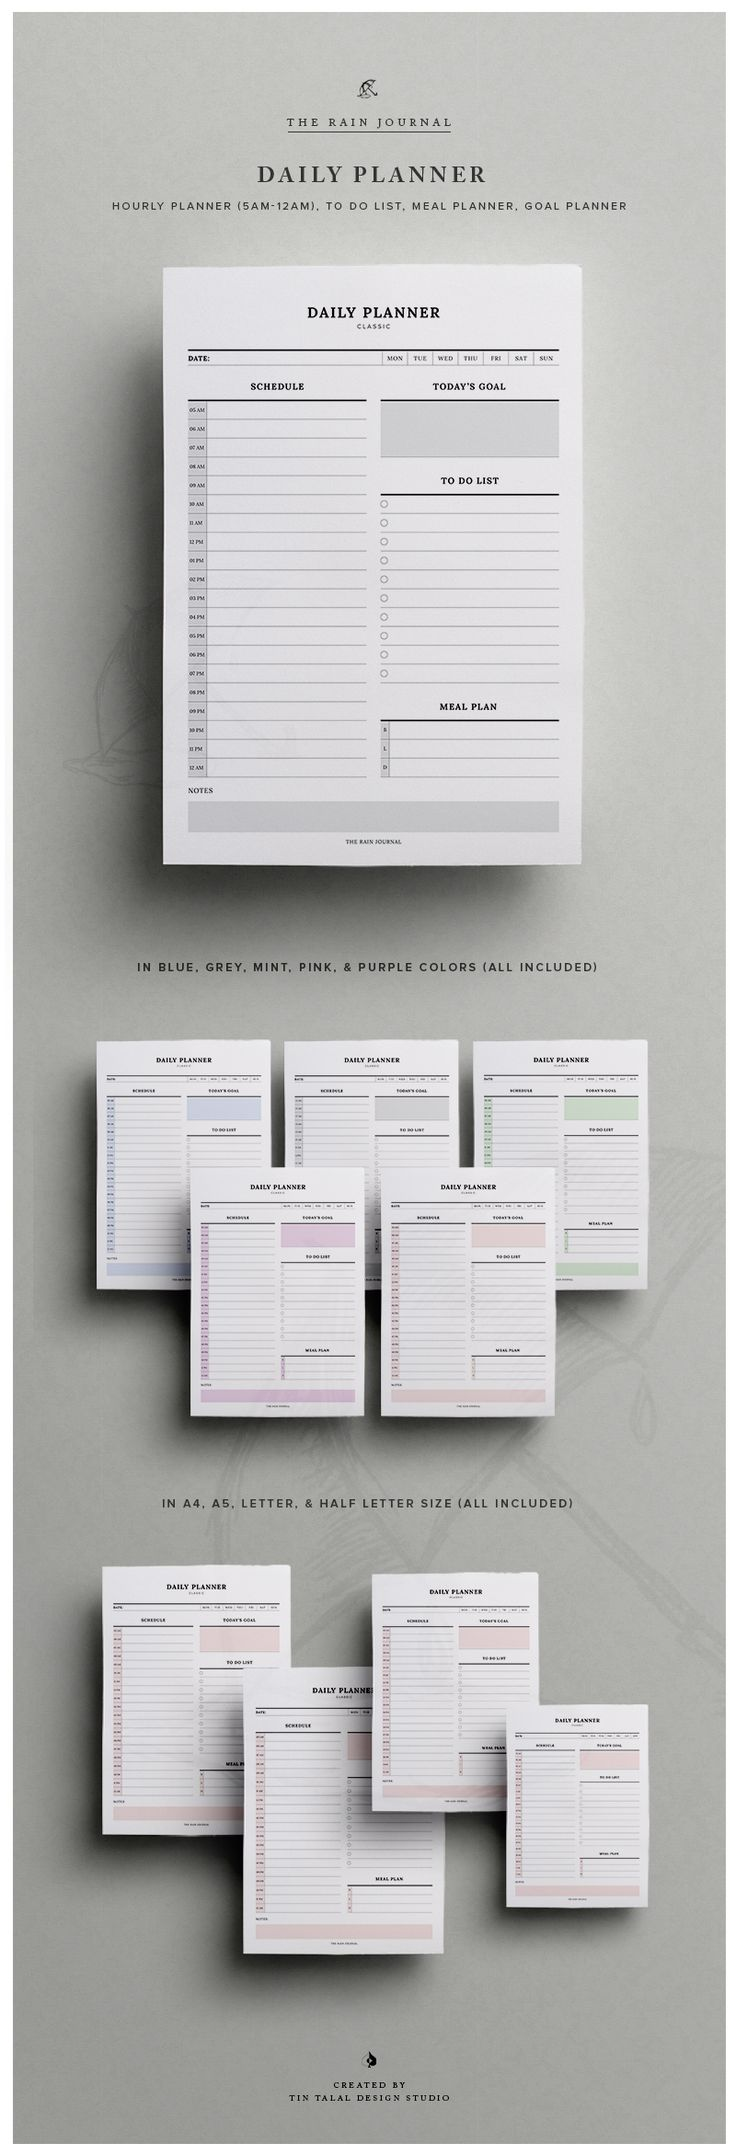 1538 best Planners, Journals & Diaries images on Pinterest ...